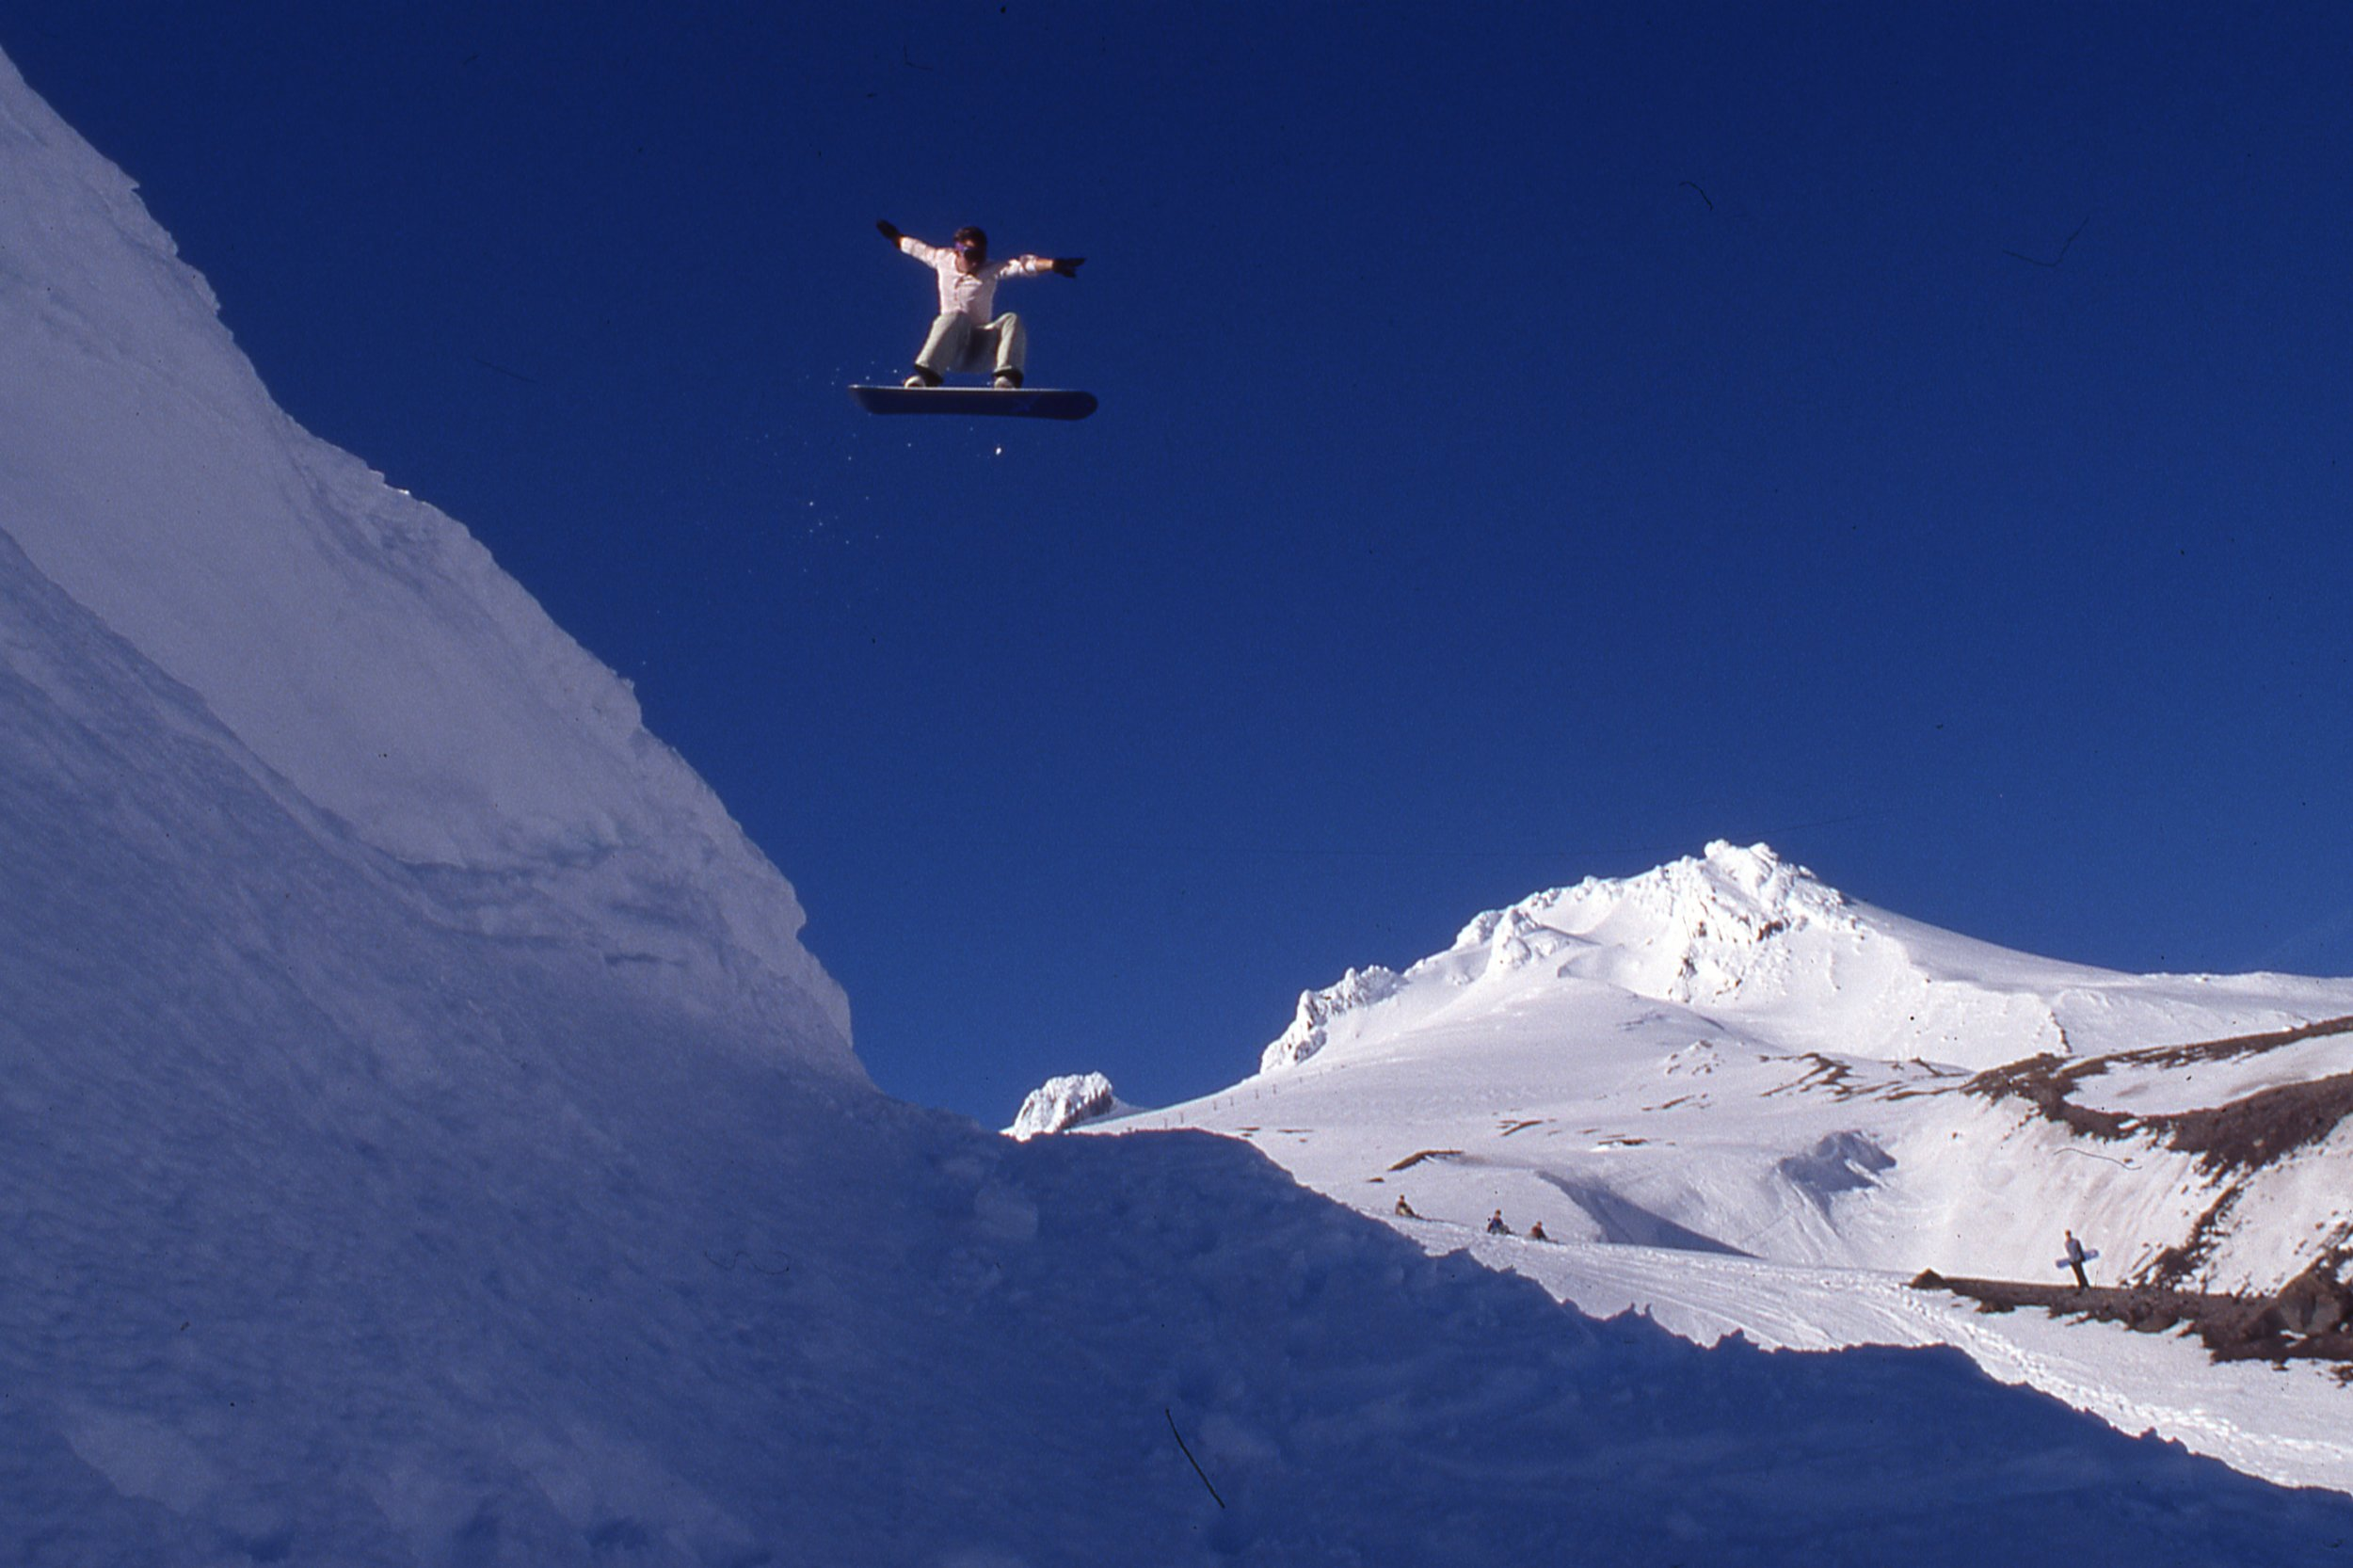 Matt Donahue, Mt Hood, OR, late 90s, Chris Brunkhart photo